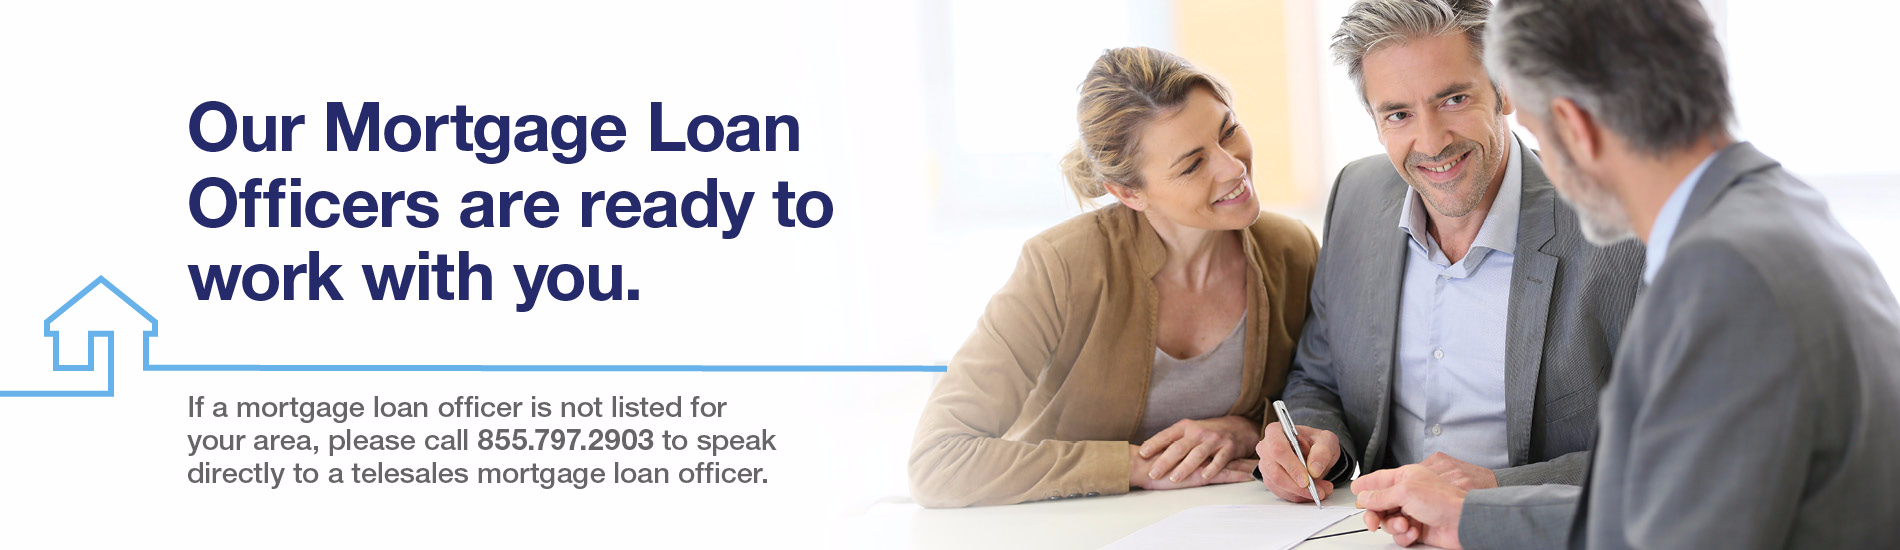 Find a U.S. bank mortgage loan officer in Arizona.